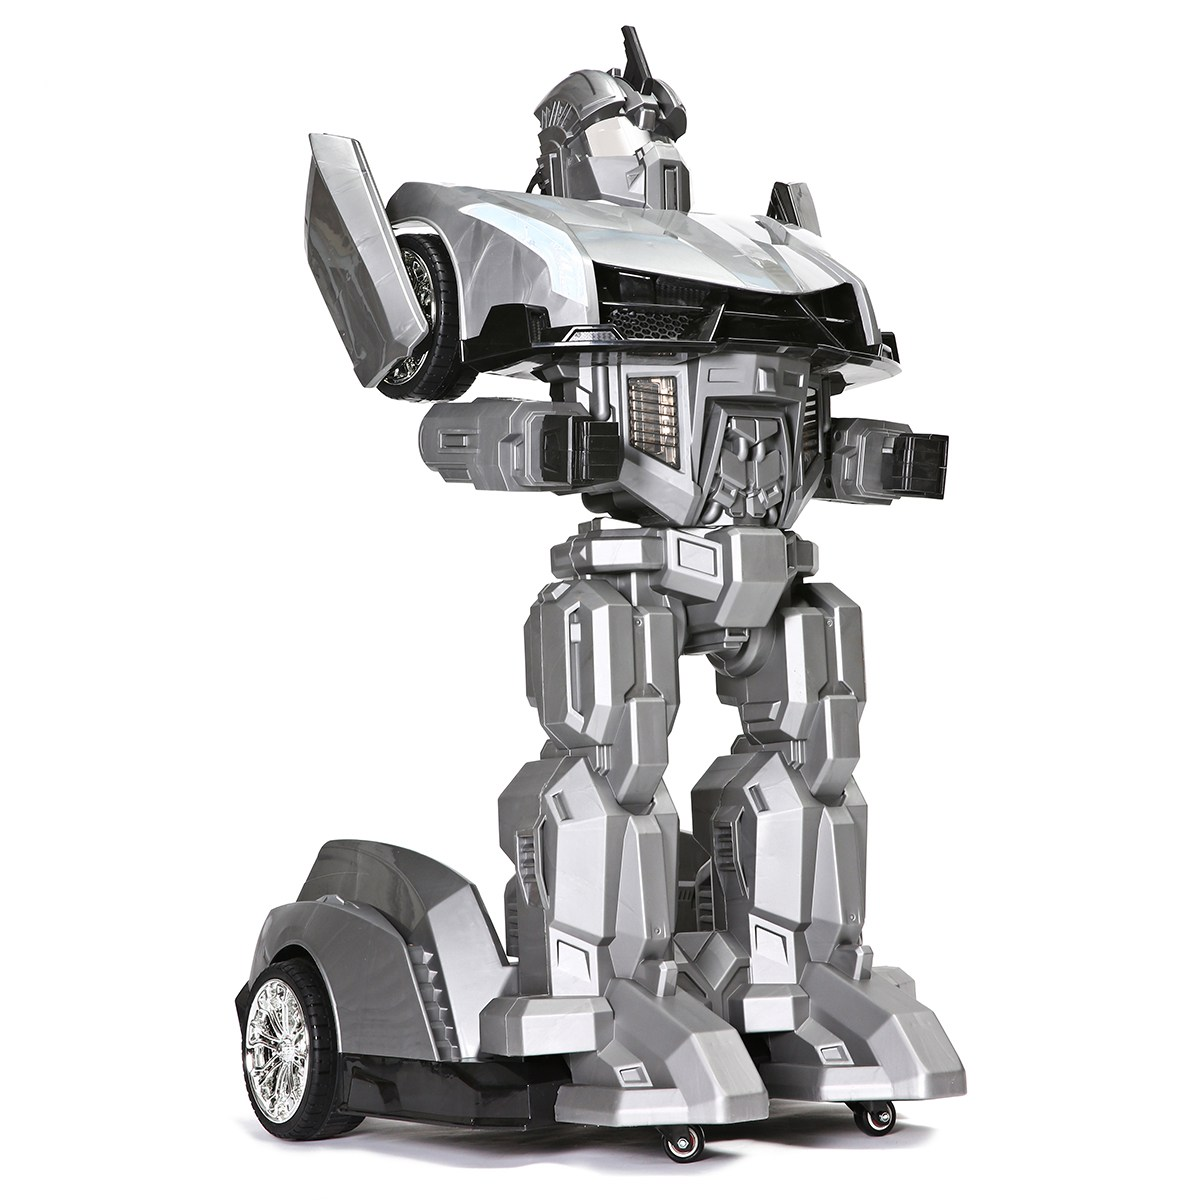 LEORY Transformer Humanoid Robot RC With Led-Headlight 25w-Motor Kids Children'day Gift